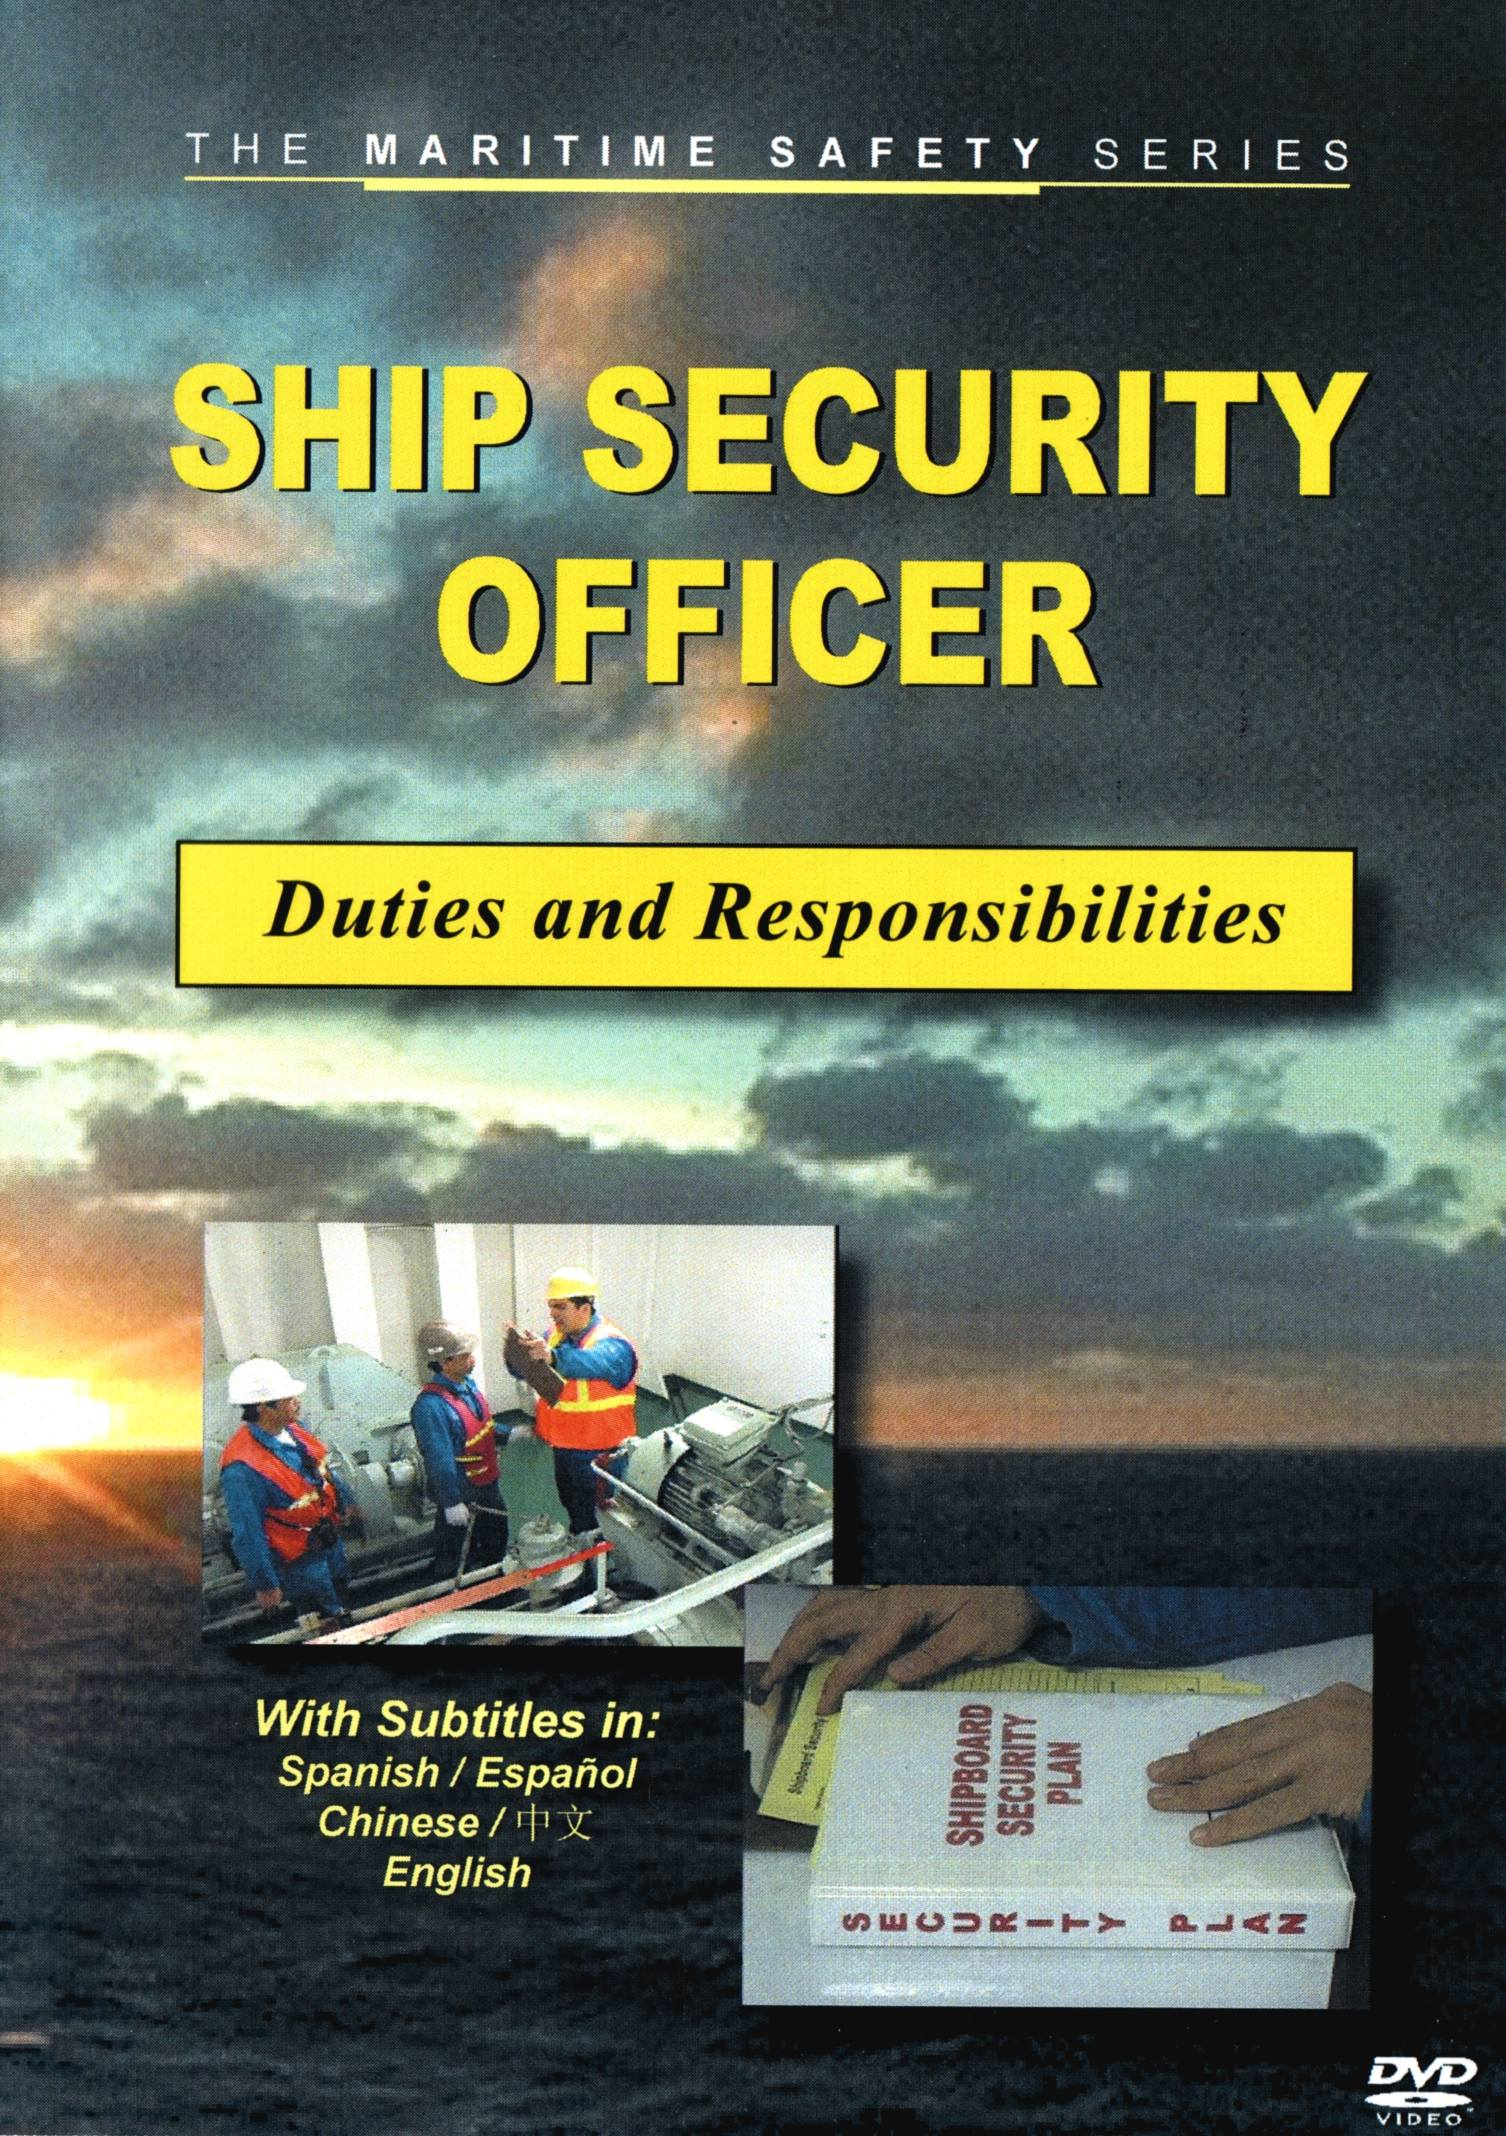 Ship Security Officer Training: Duties & Responsibilities